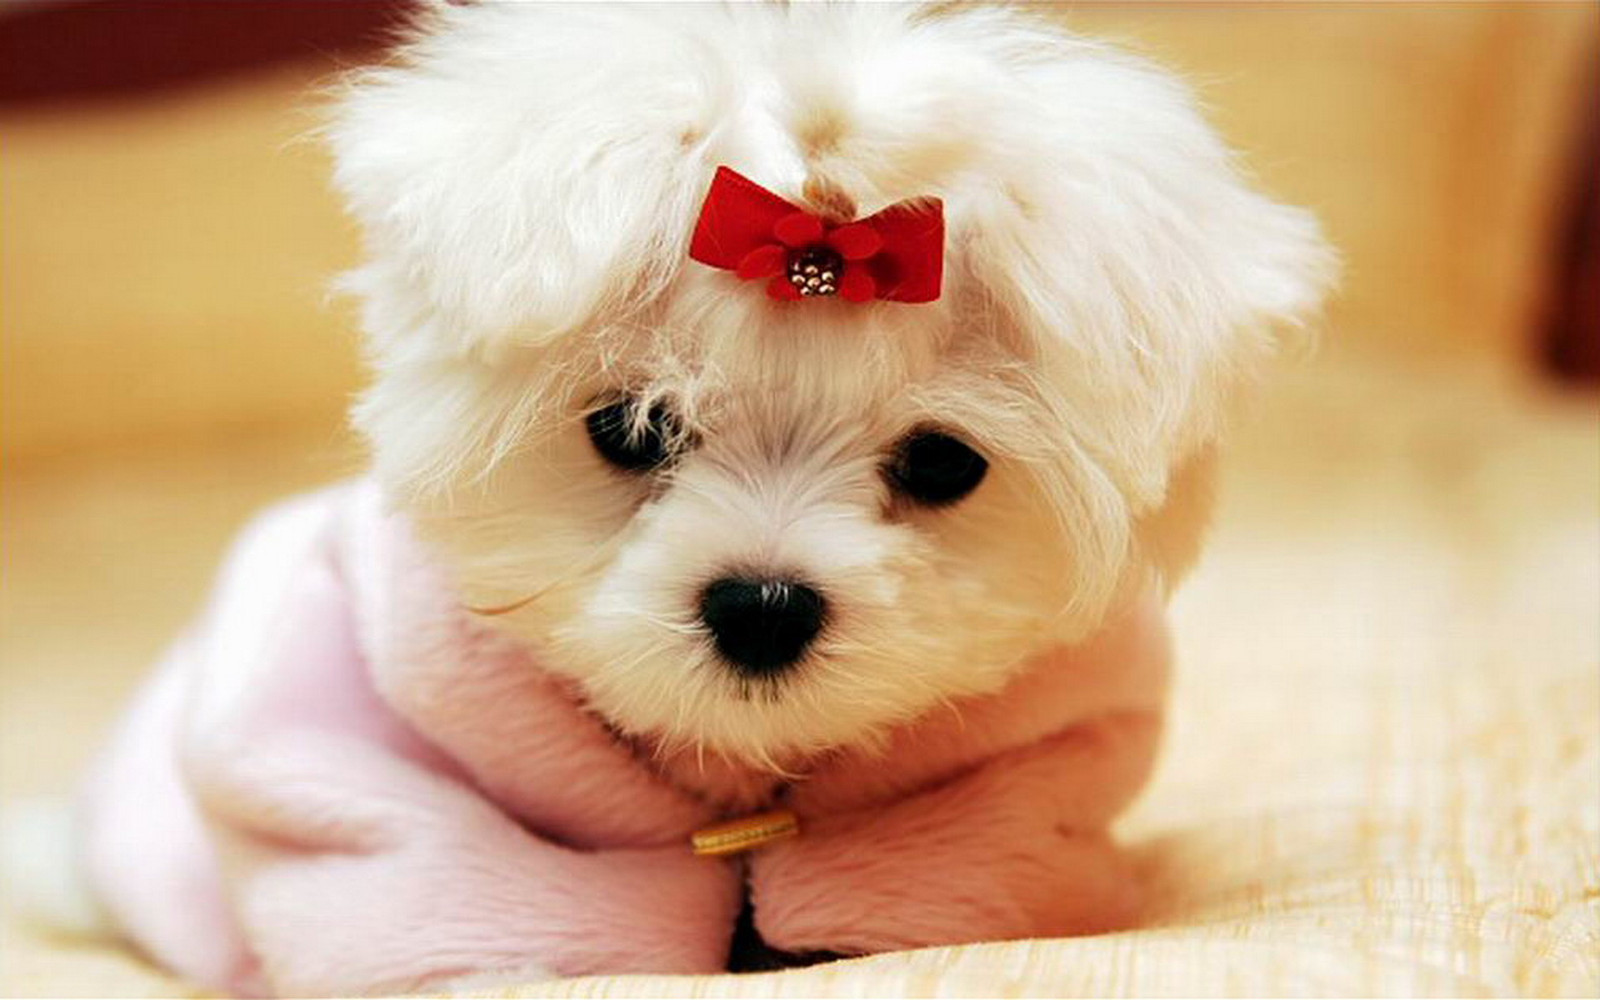 Cute Dog Wallpaper Hd For Android 3jpg